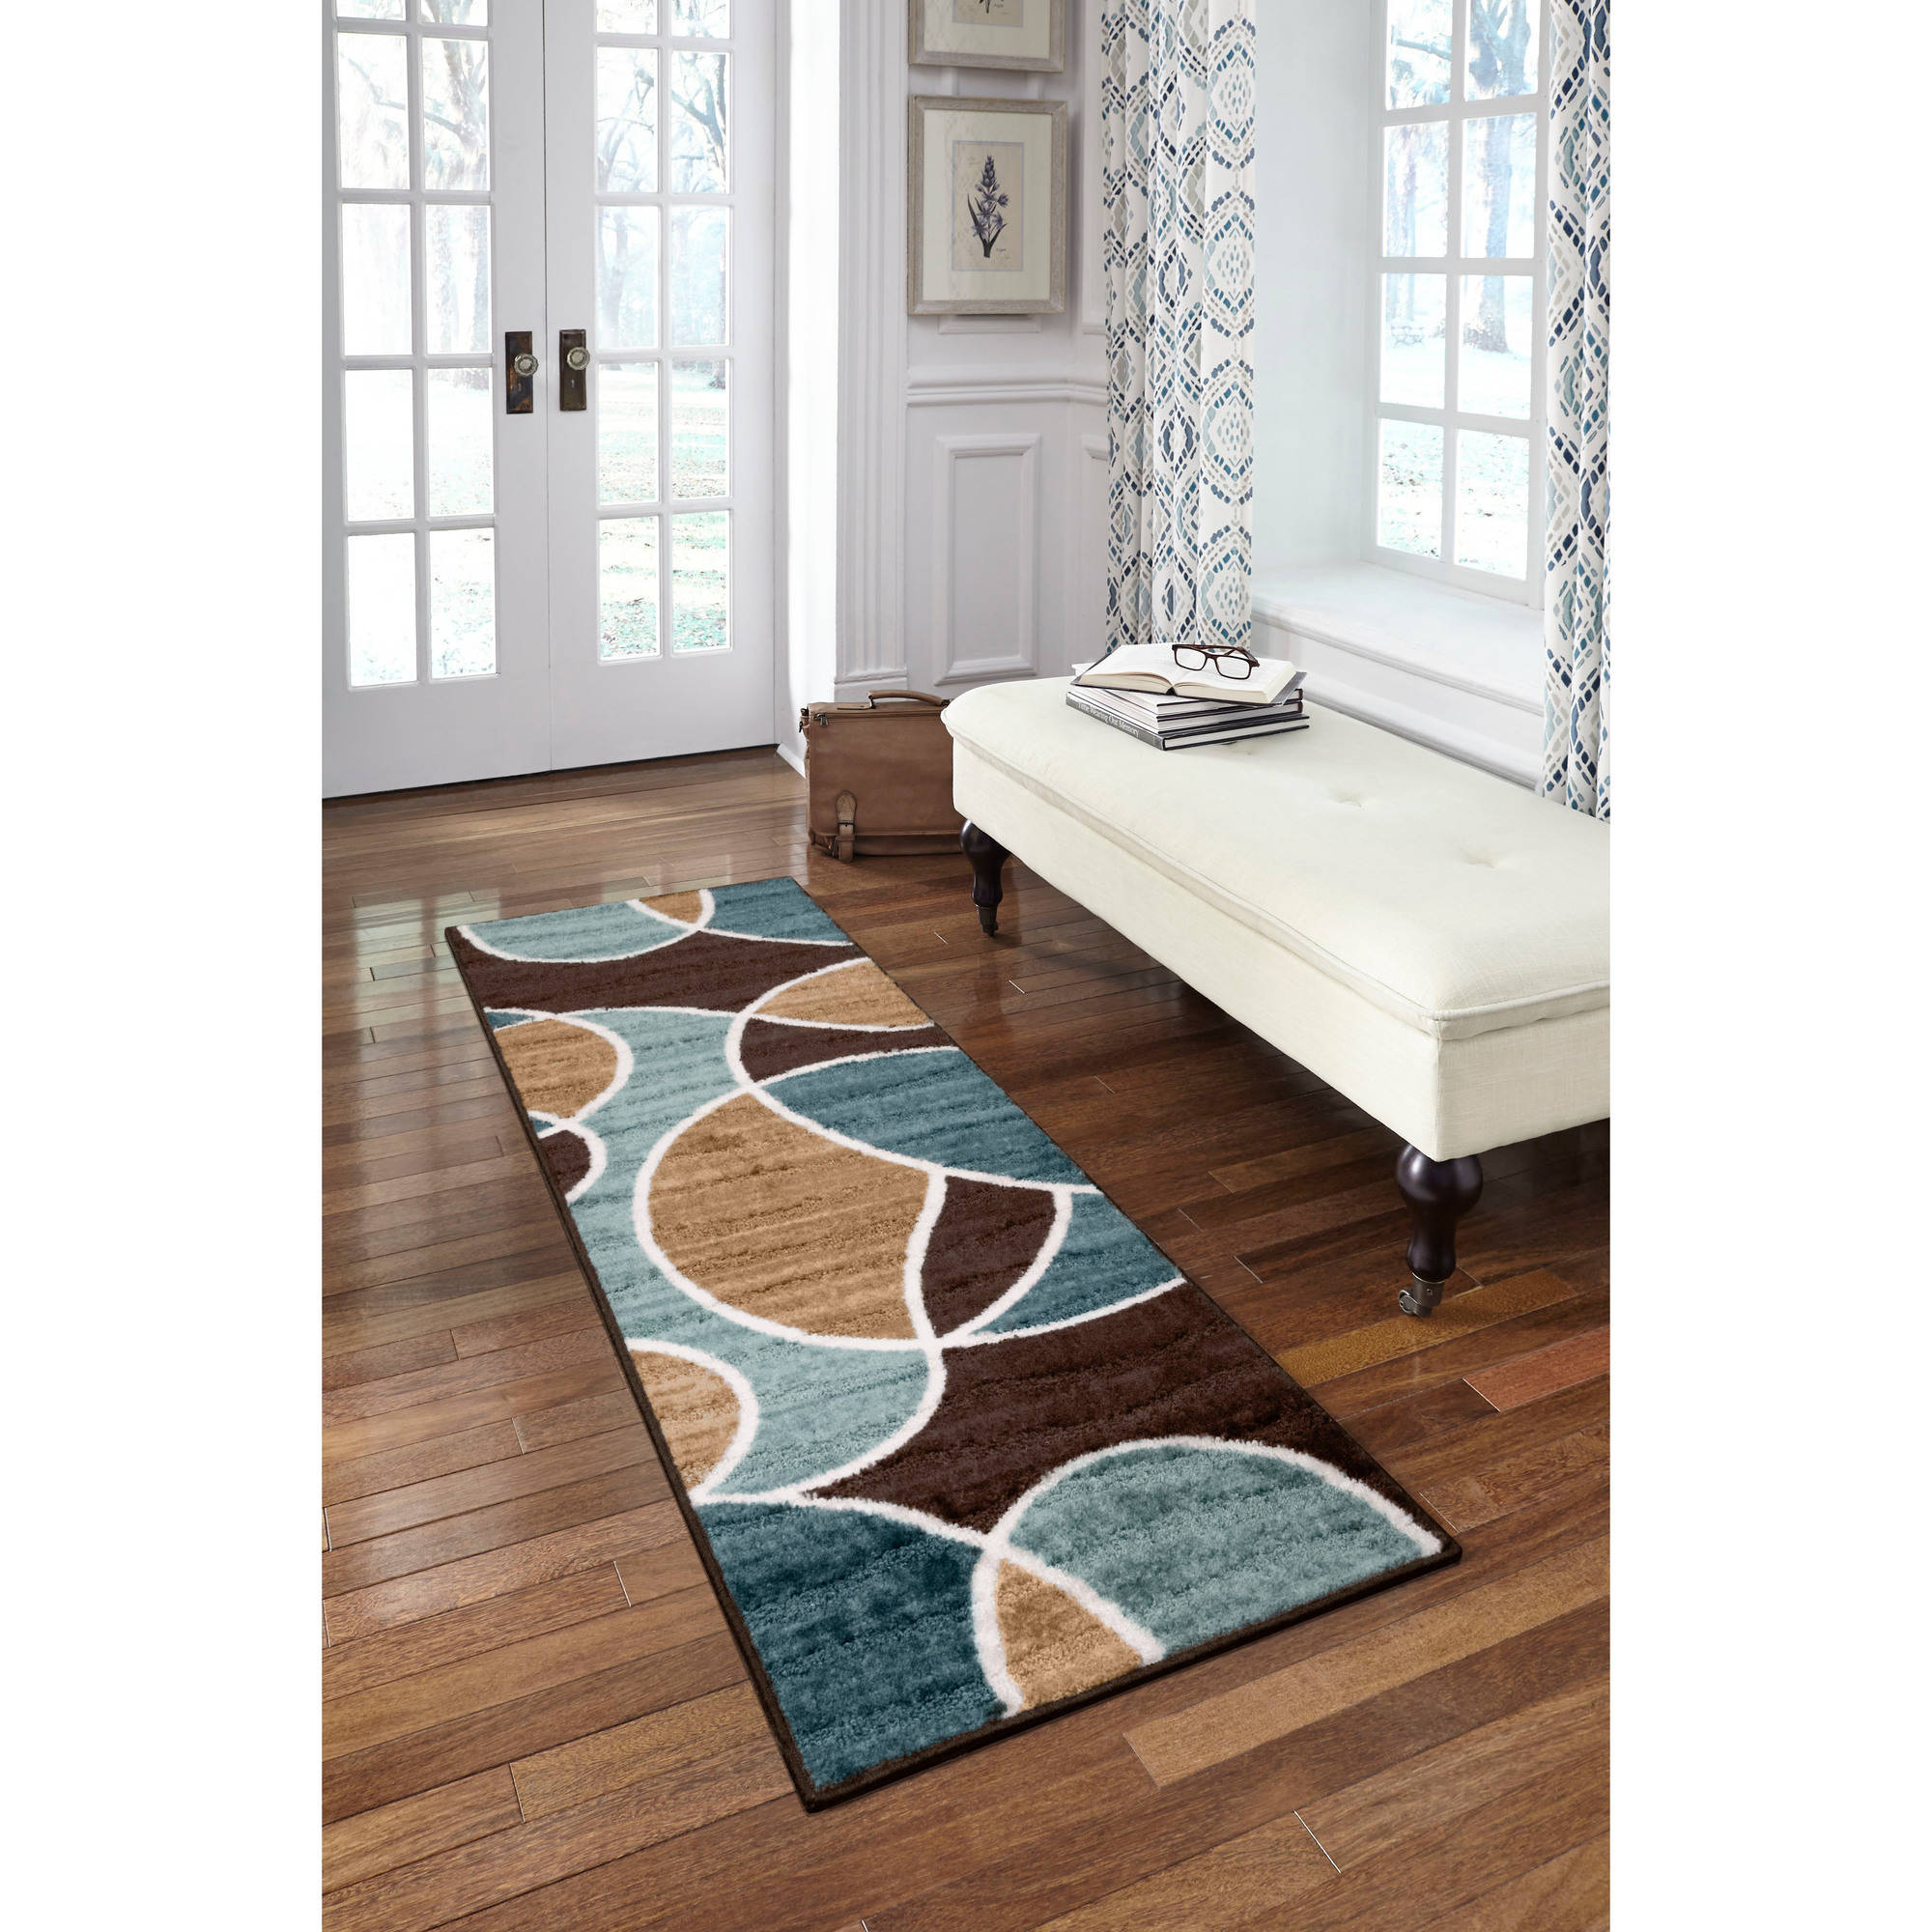 Better Homes and Garden Geo Waves Texture Print Runner, Blue/Brown